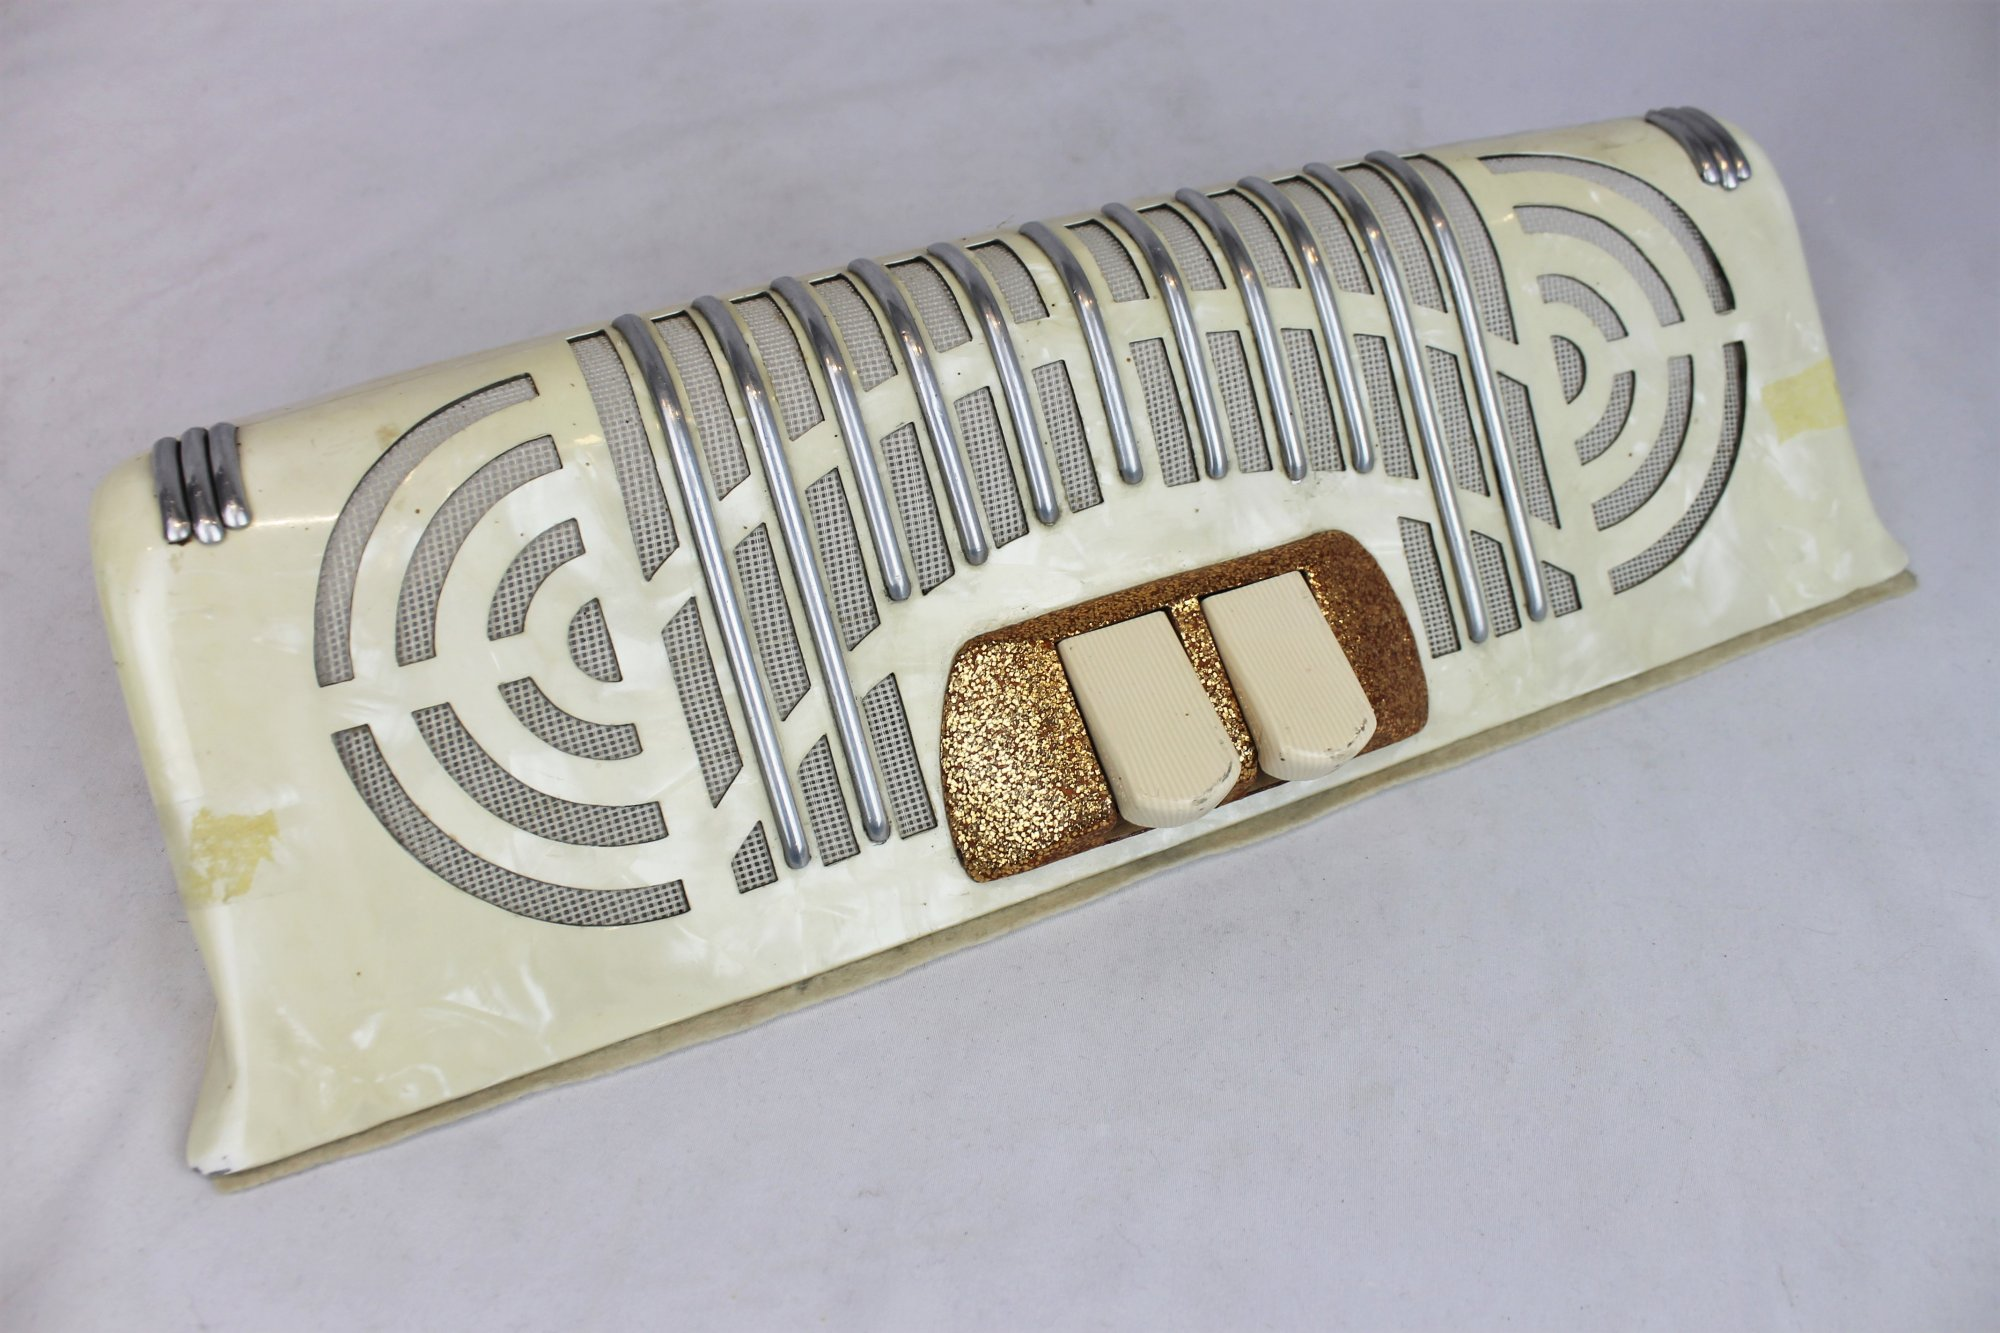 Accordion Part - Cream Grill  and Switches 16.25 x 5.25 x 1.8